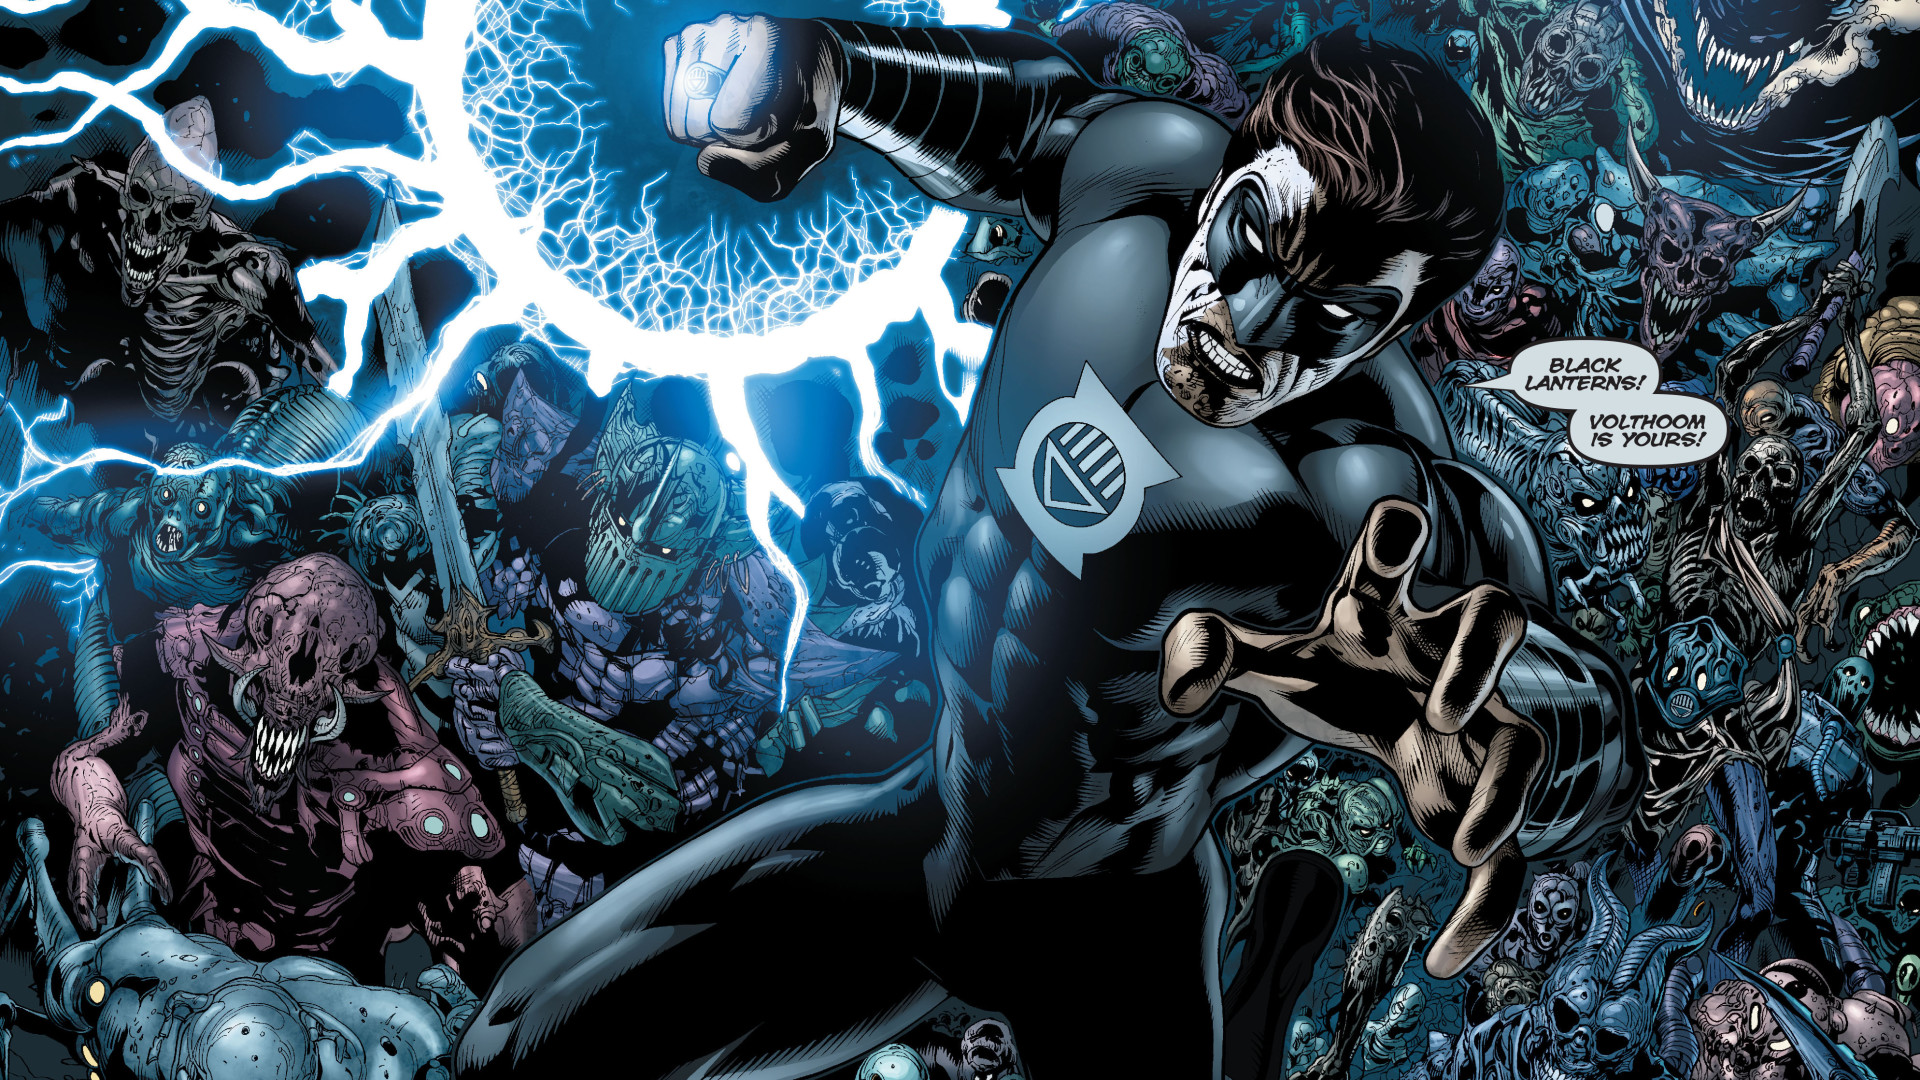 Top Black Lantern Photos And Pictures Black Lantern Hd Widescreen Wallpapers